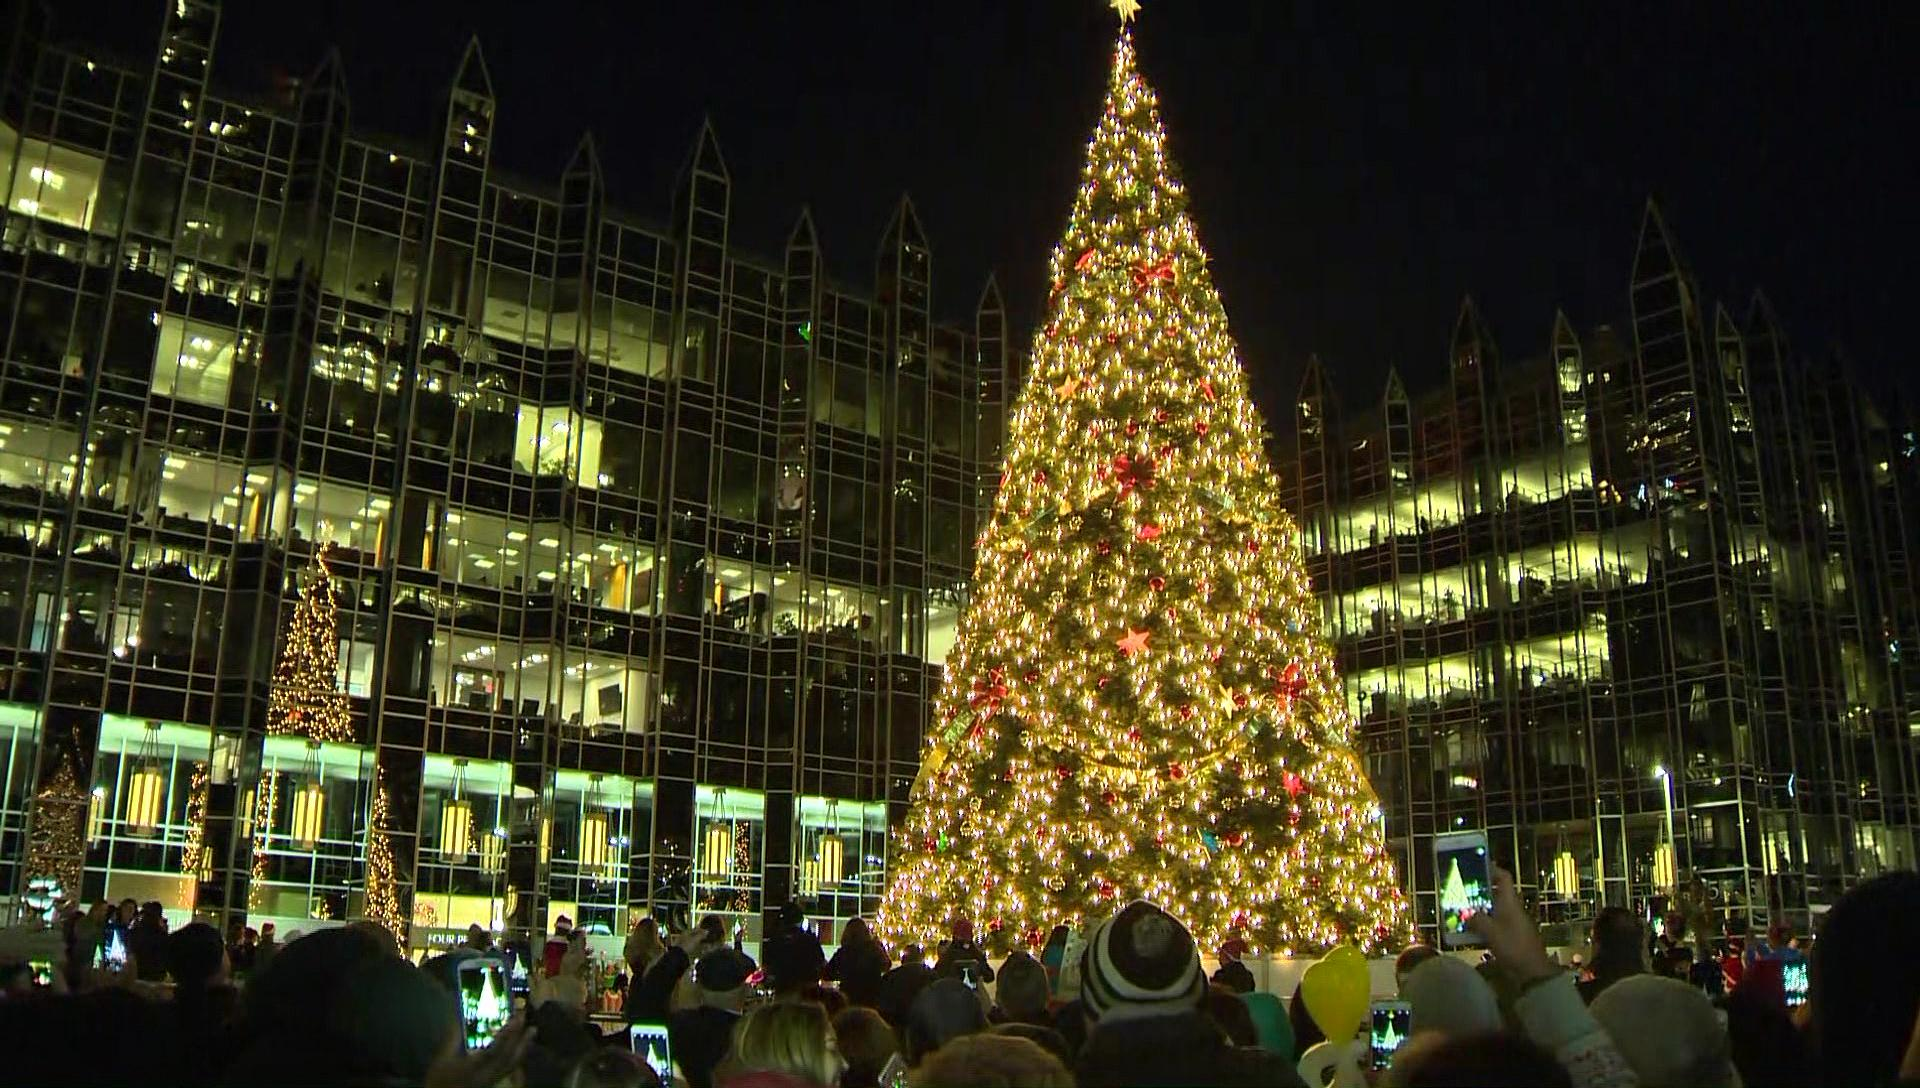 Light Up Night: Tree lighting and ice skating at PPG rink in Pittsburgh